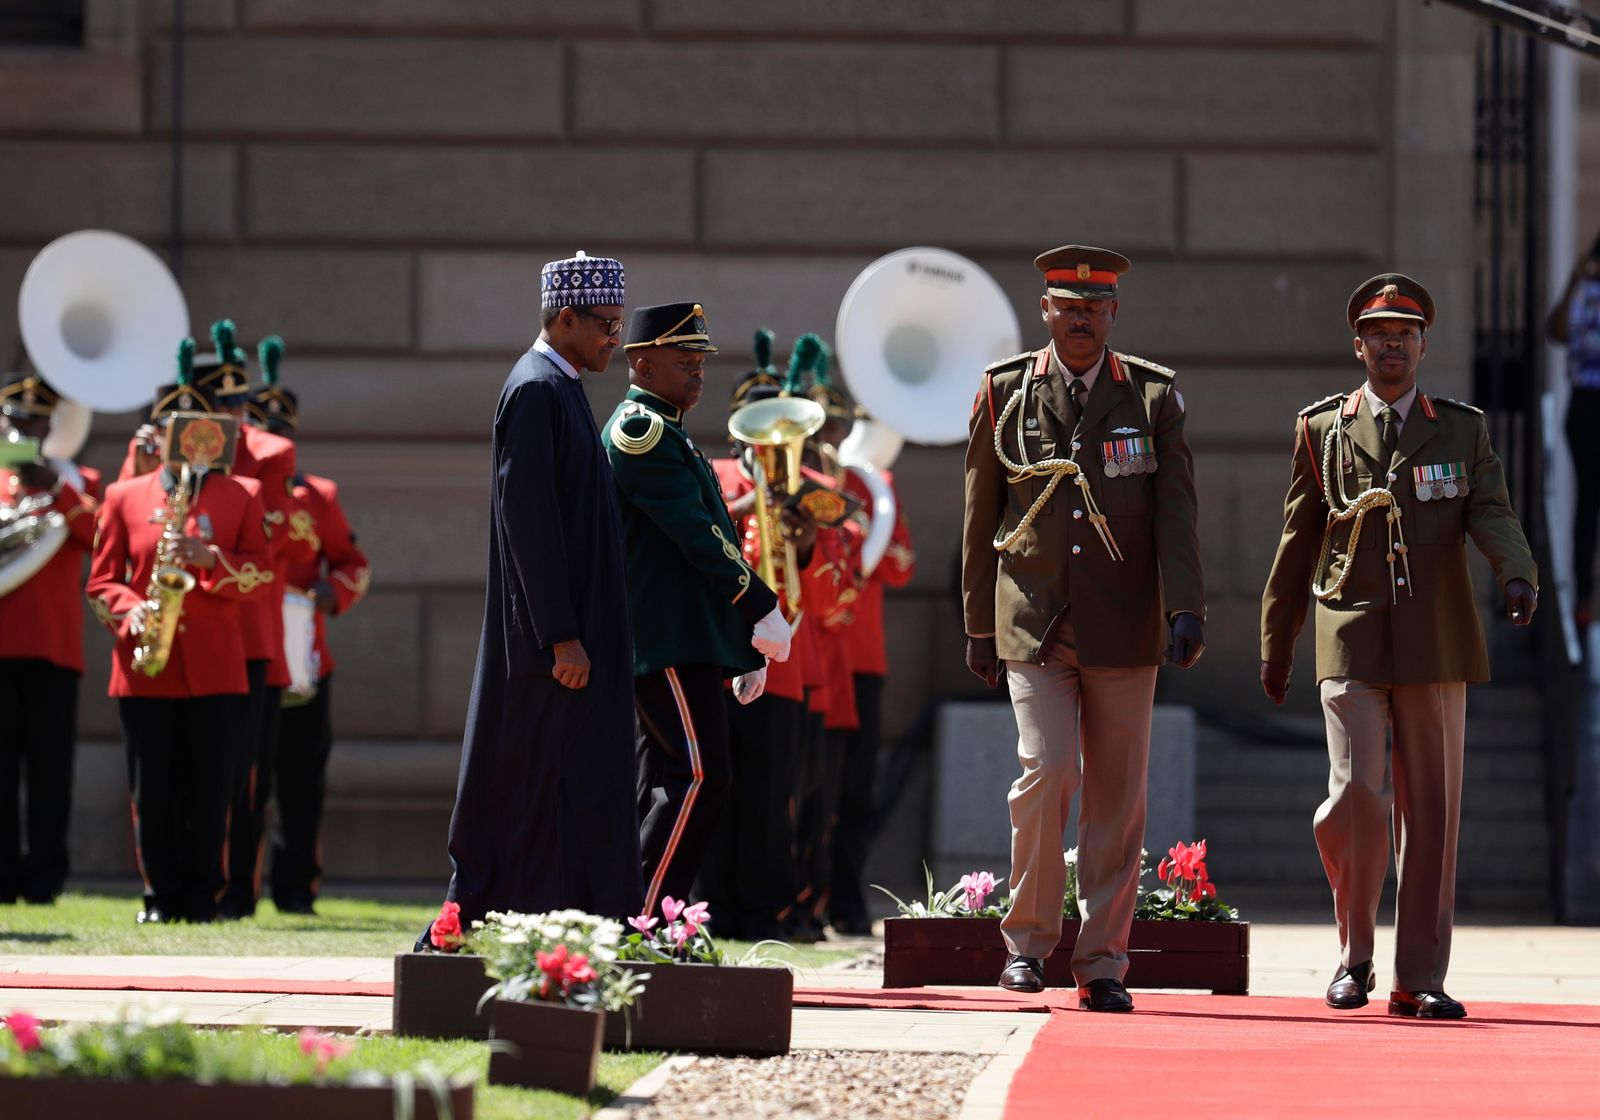 Nigerian President Muhammadu Buhari inspects a guard of honour at a welcoming ceremony in Pretoria, South Africa Thursday, Oct. 3, 2019. (AP Photo/Themba Hadebe)